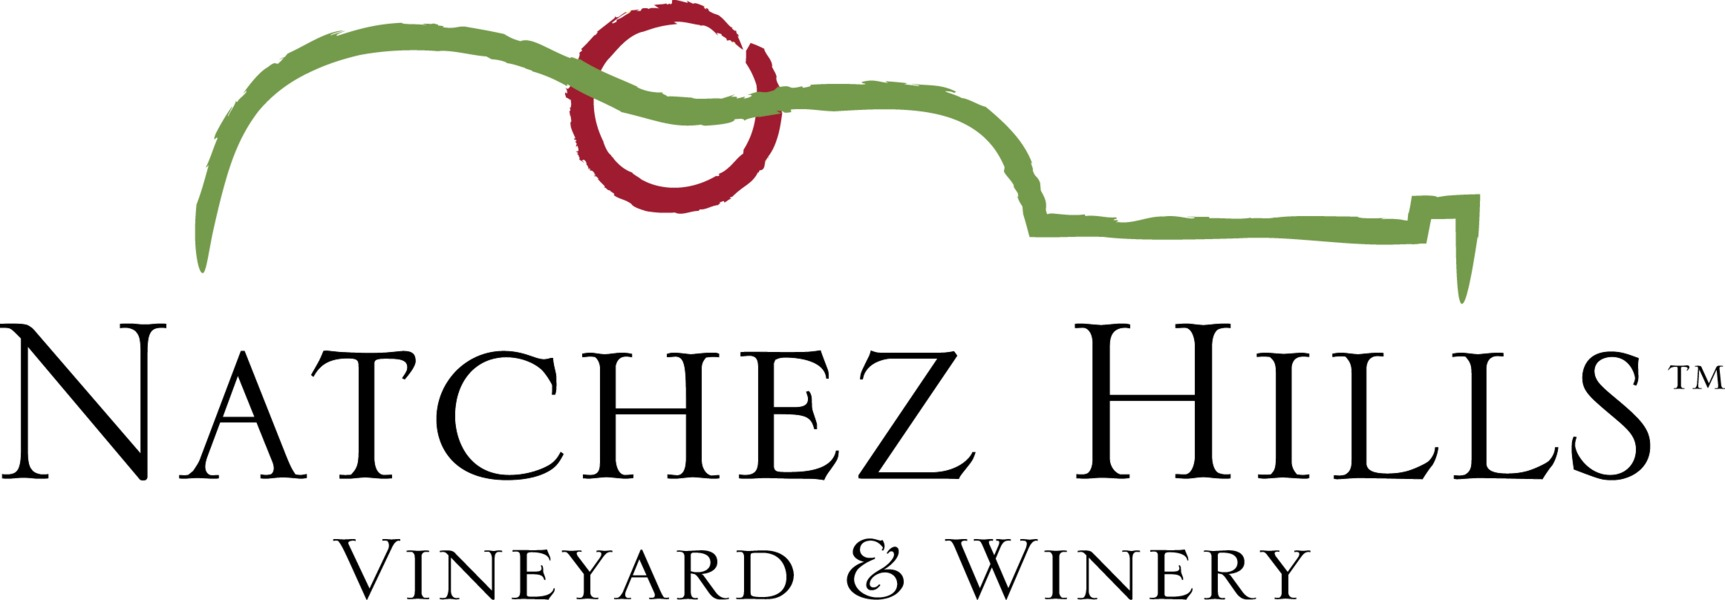 Brand for Natchez Hills Vineyard